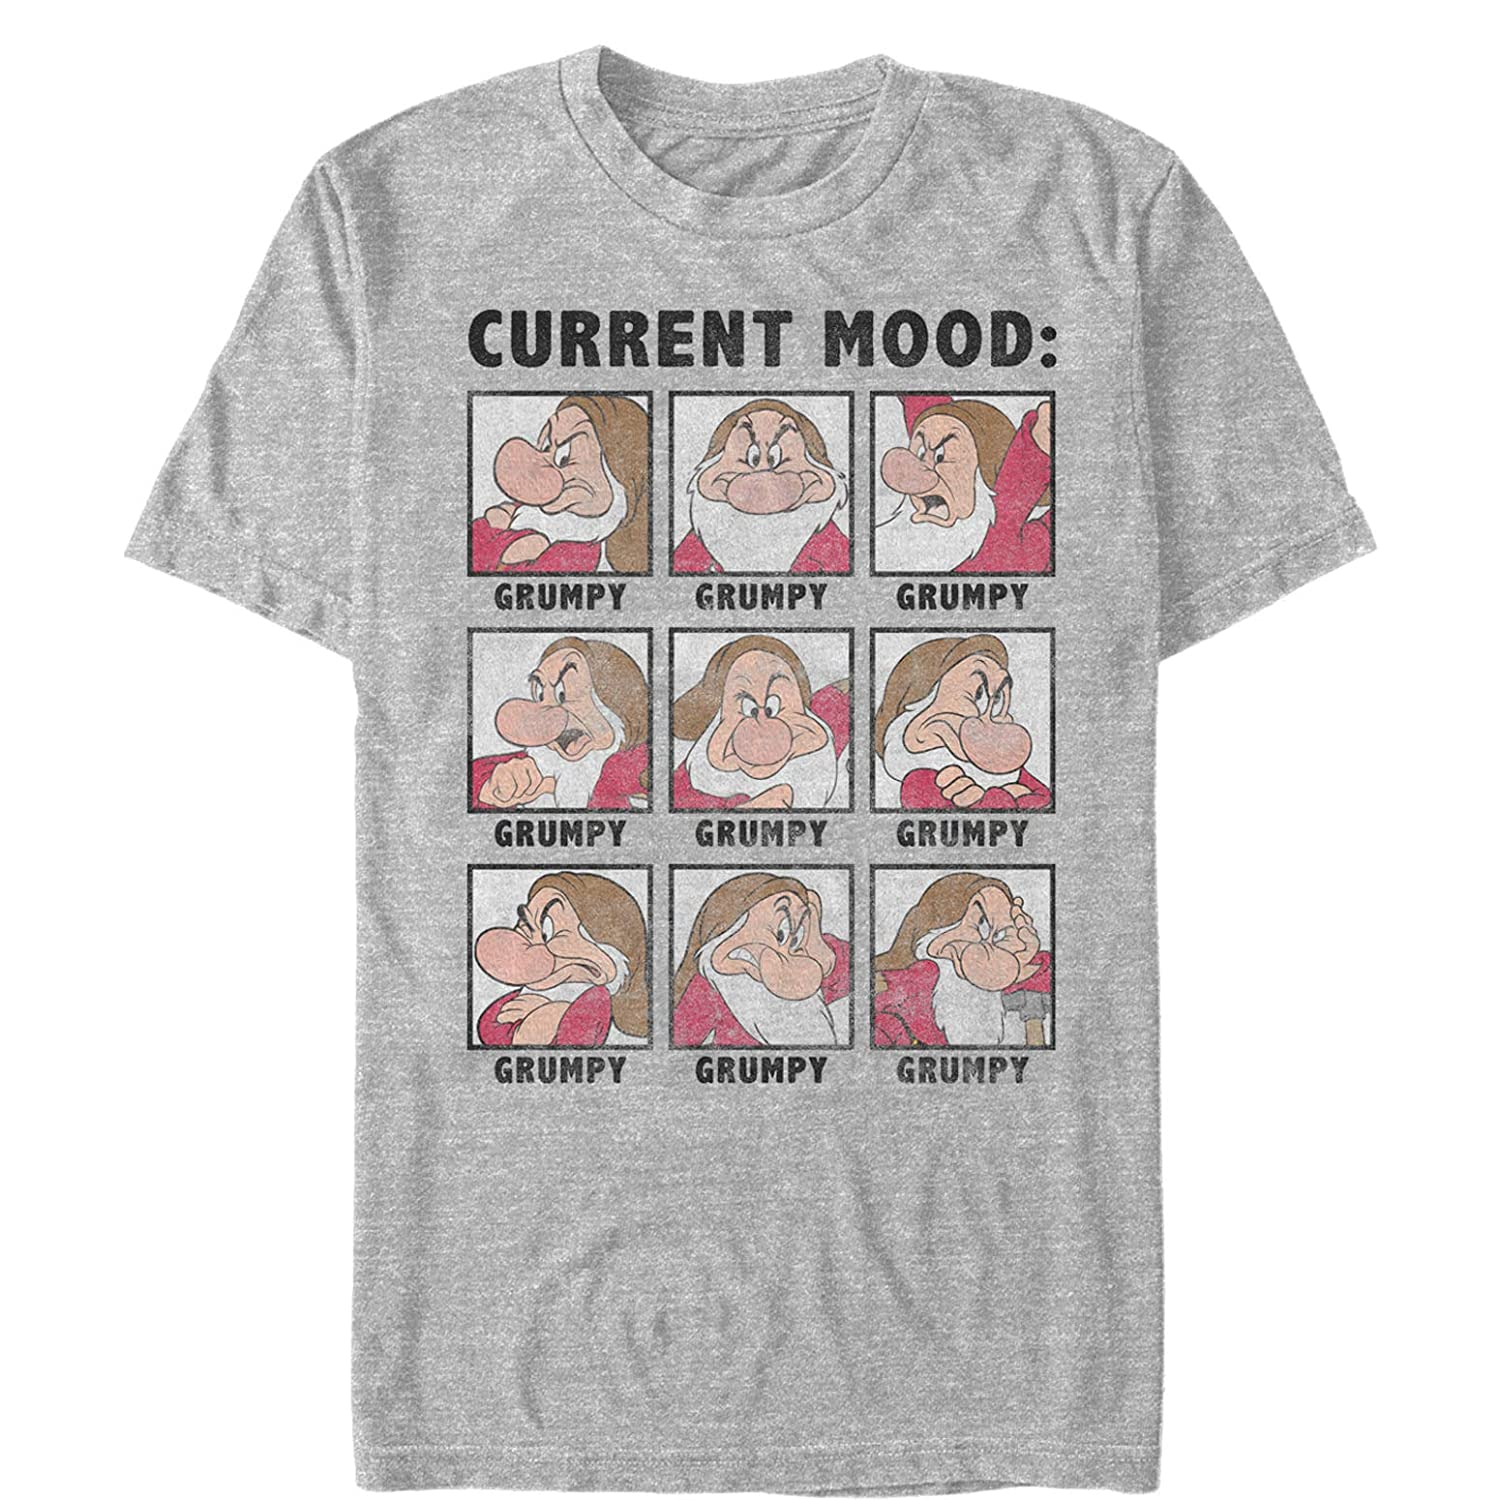 Snow White and The Seven Dwarves Mens Grumpy Current Mood T-Shirt